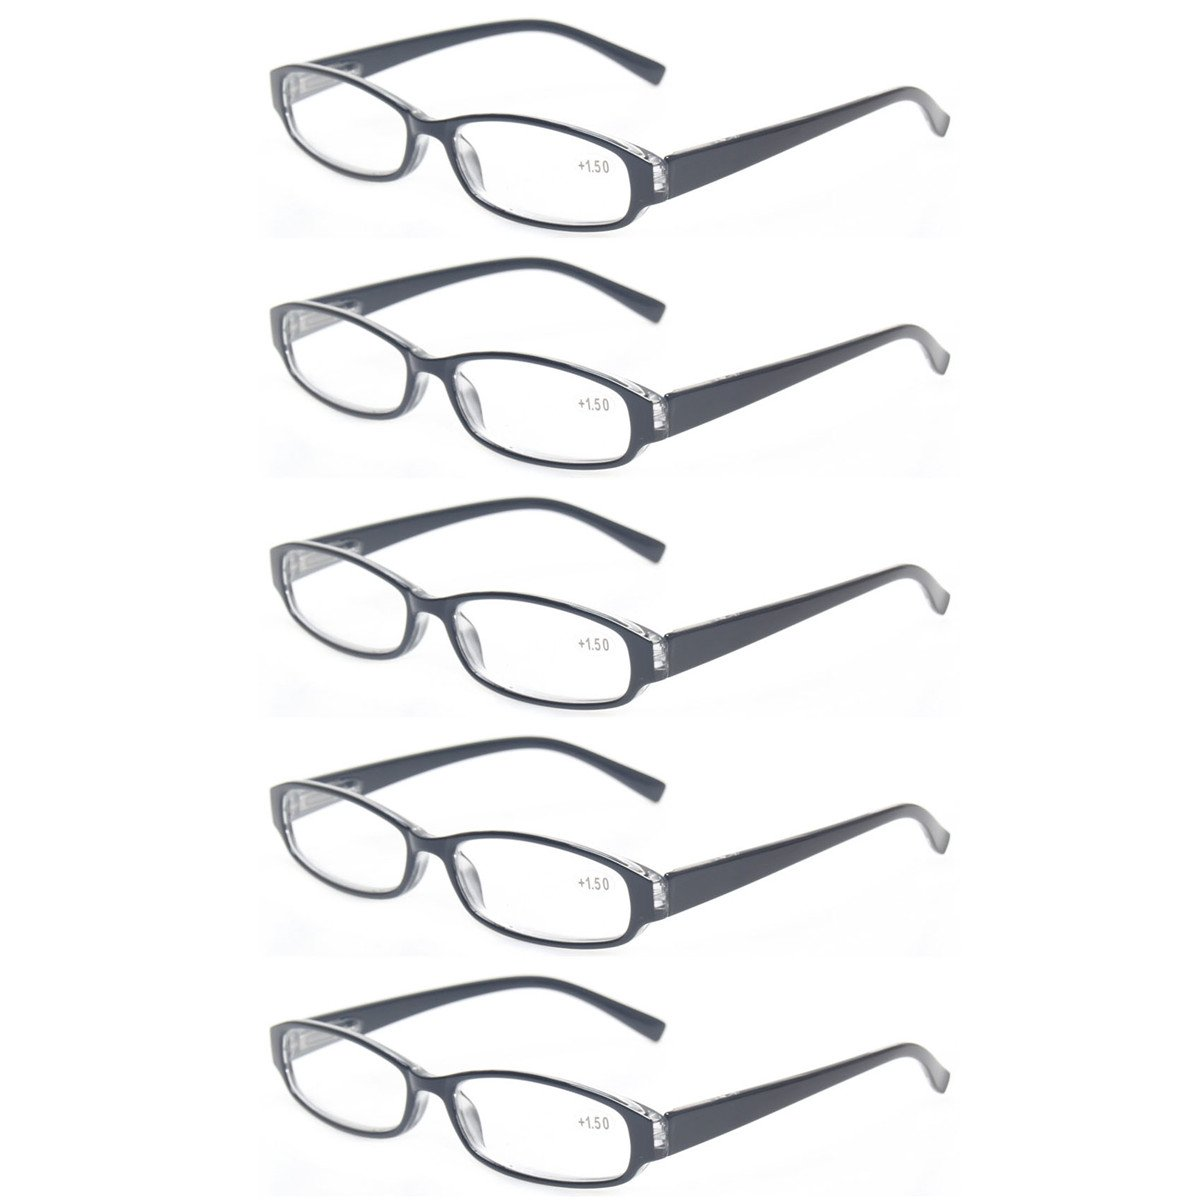 67dc9b2ea6e7 Galleon - Reading Glasses Comb Pack Of Multiple Fashion Men And Women  Spring Hinge Readers (5 Pack Black